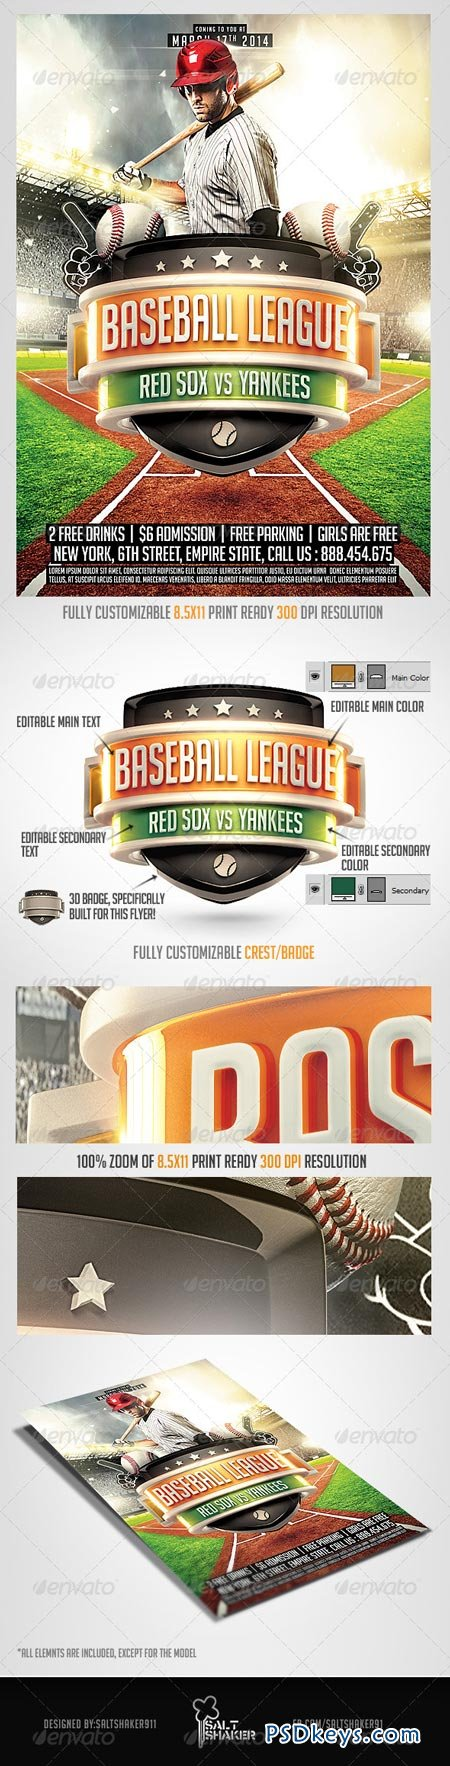 Baseball League Flyer Template 7104401